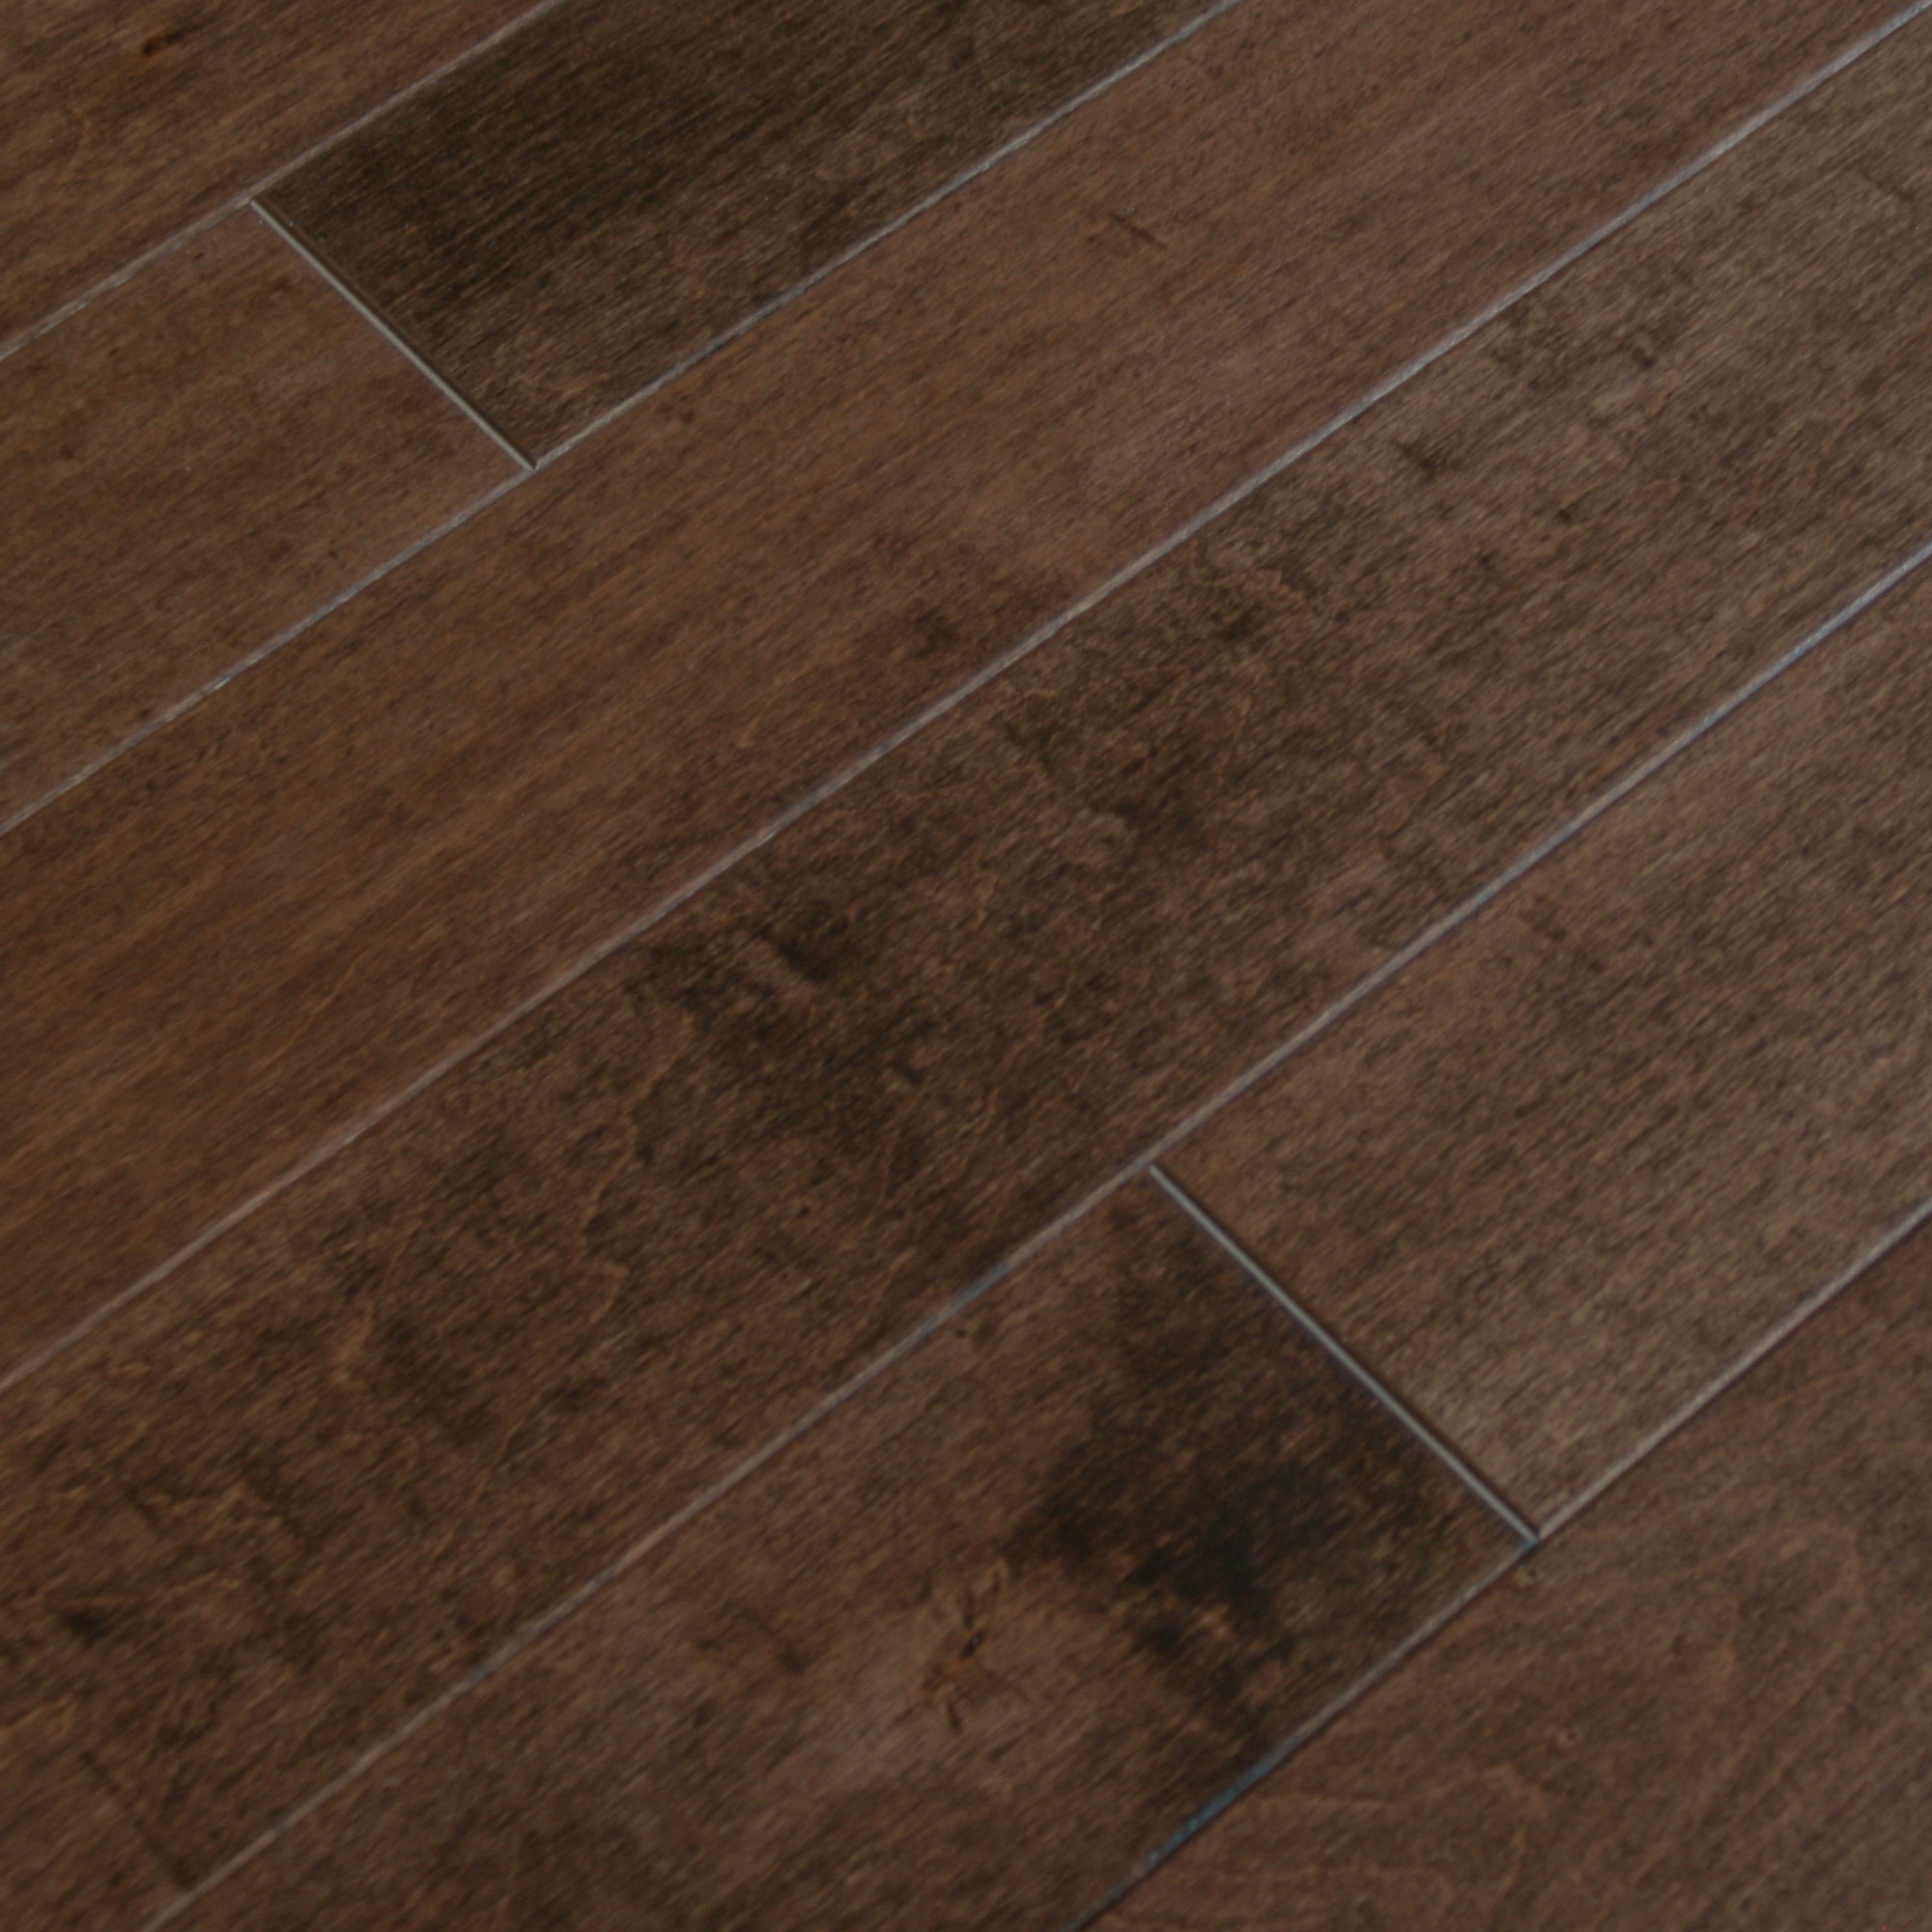 Centurion Maple Java Gany Wood Floor